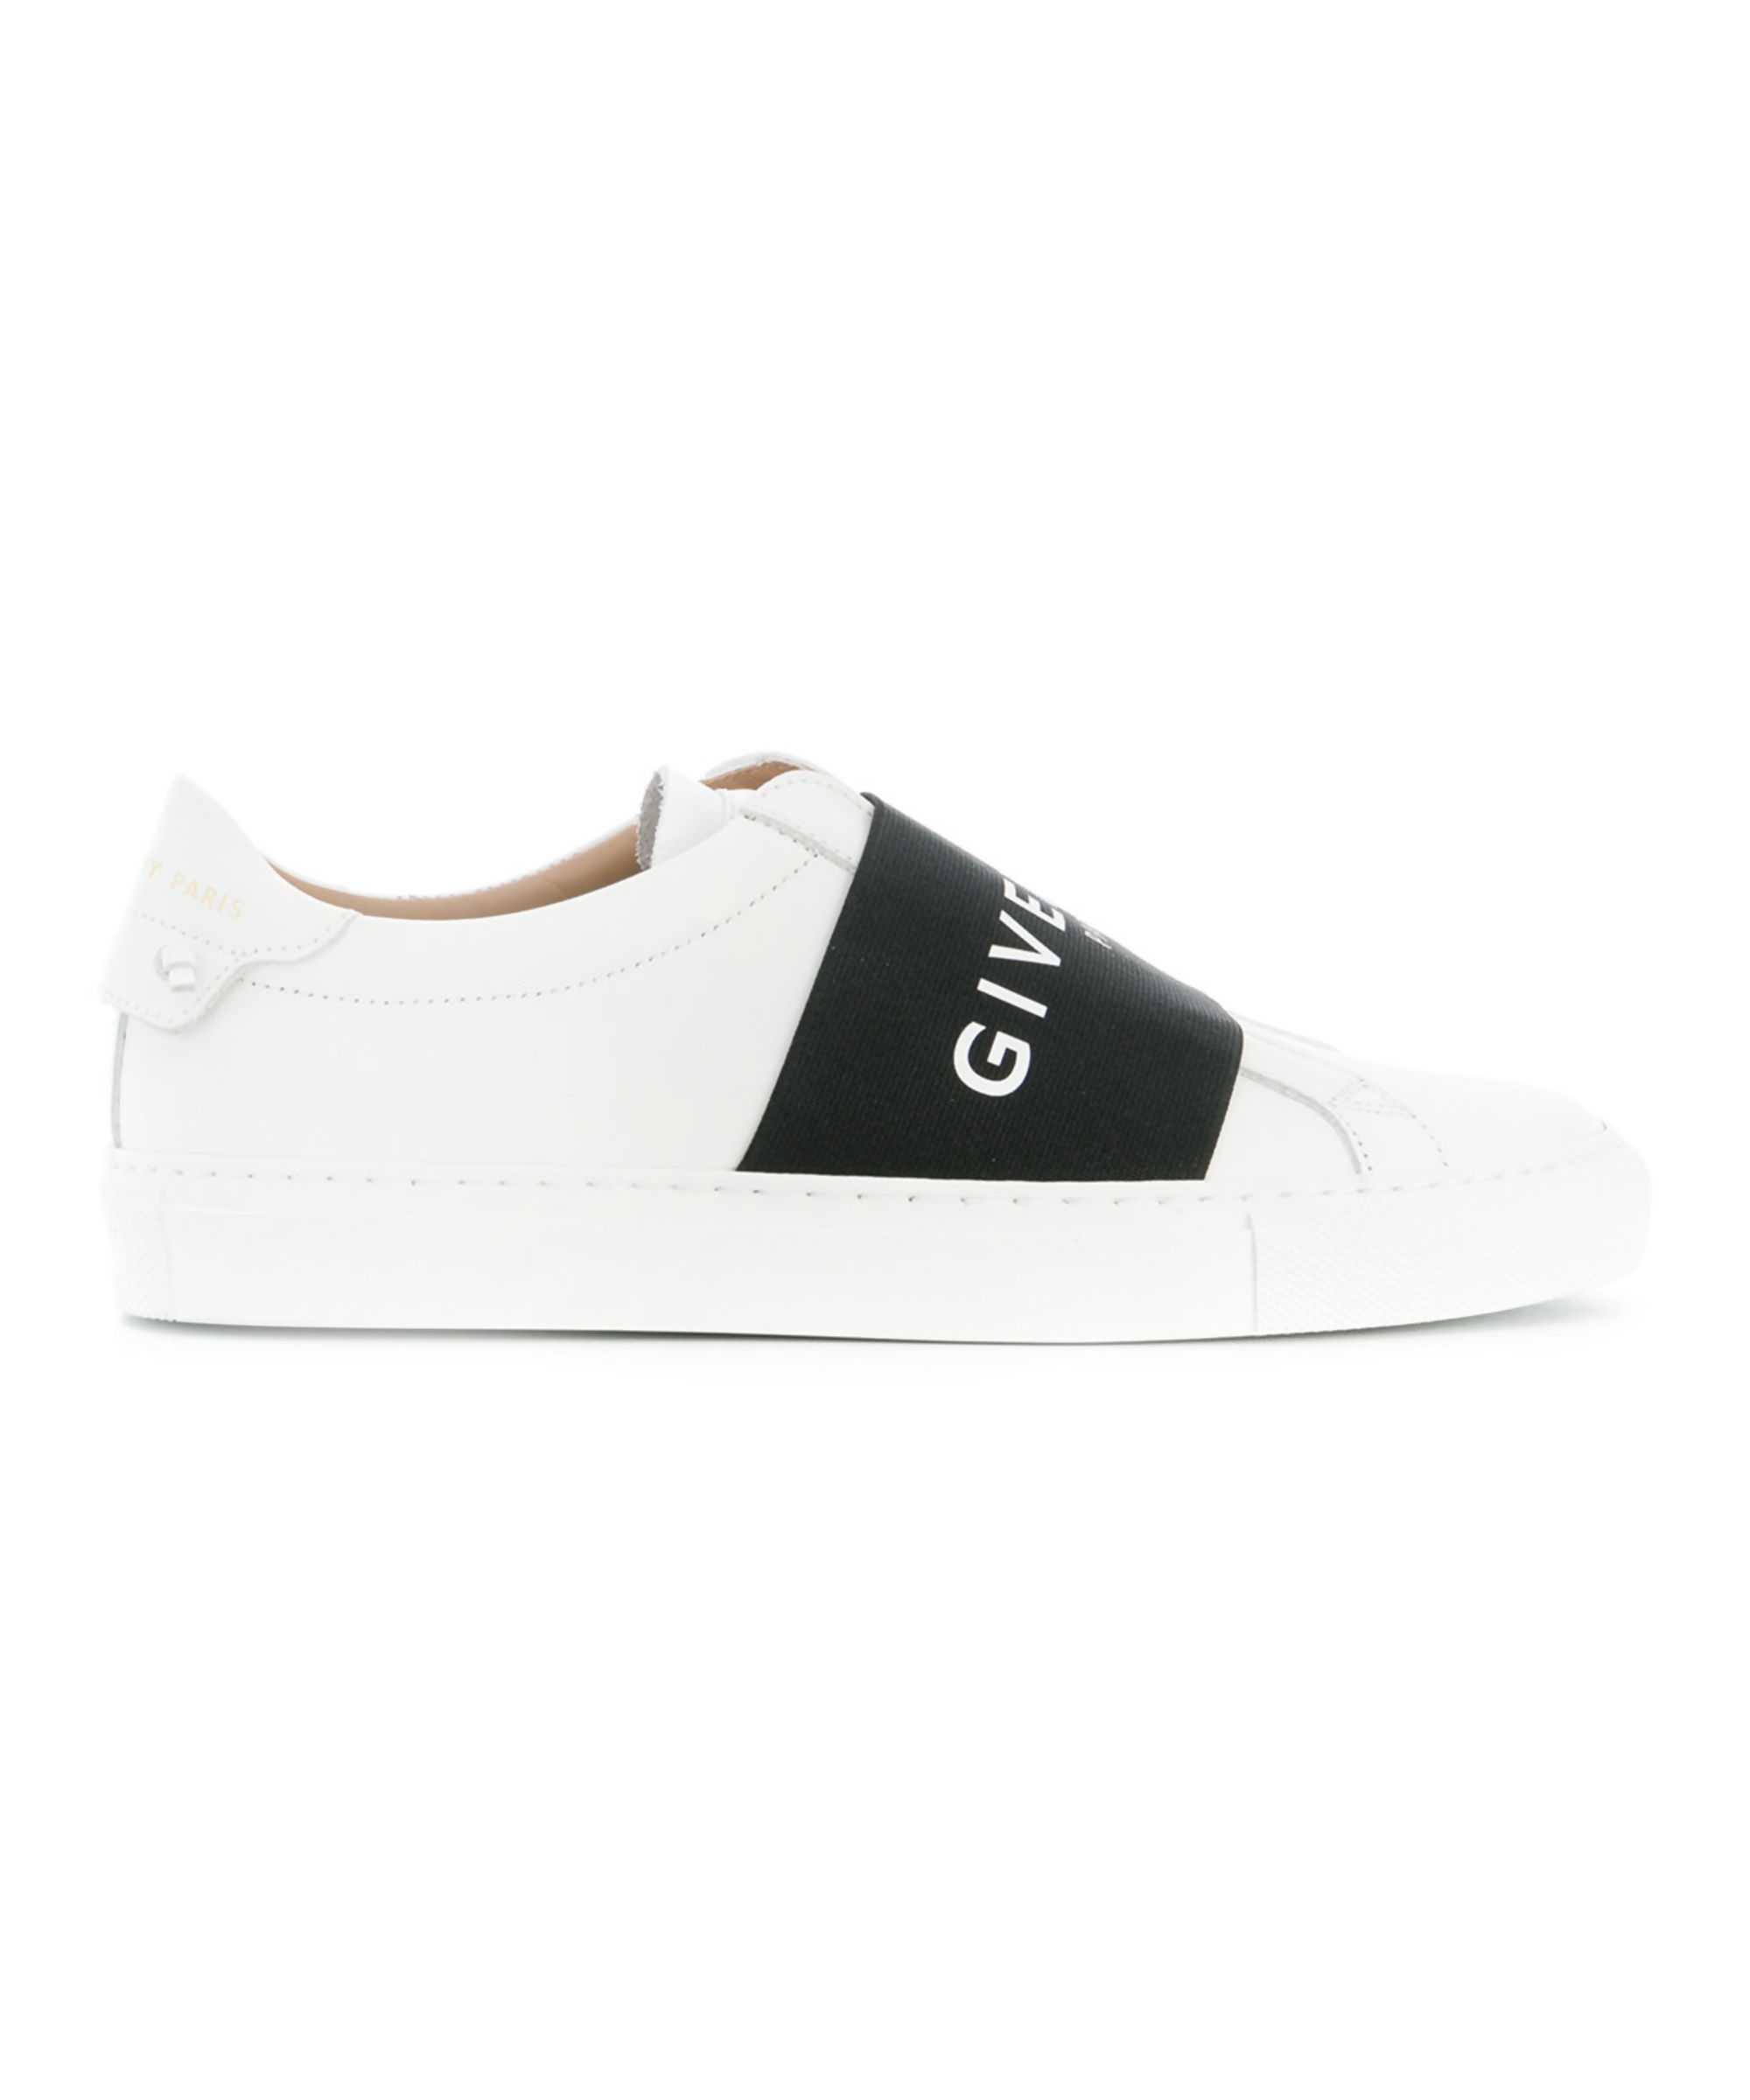 Givenchy sneakers, Leather slip ons